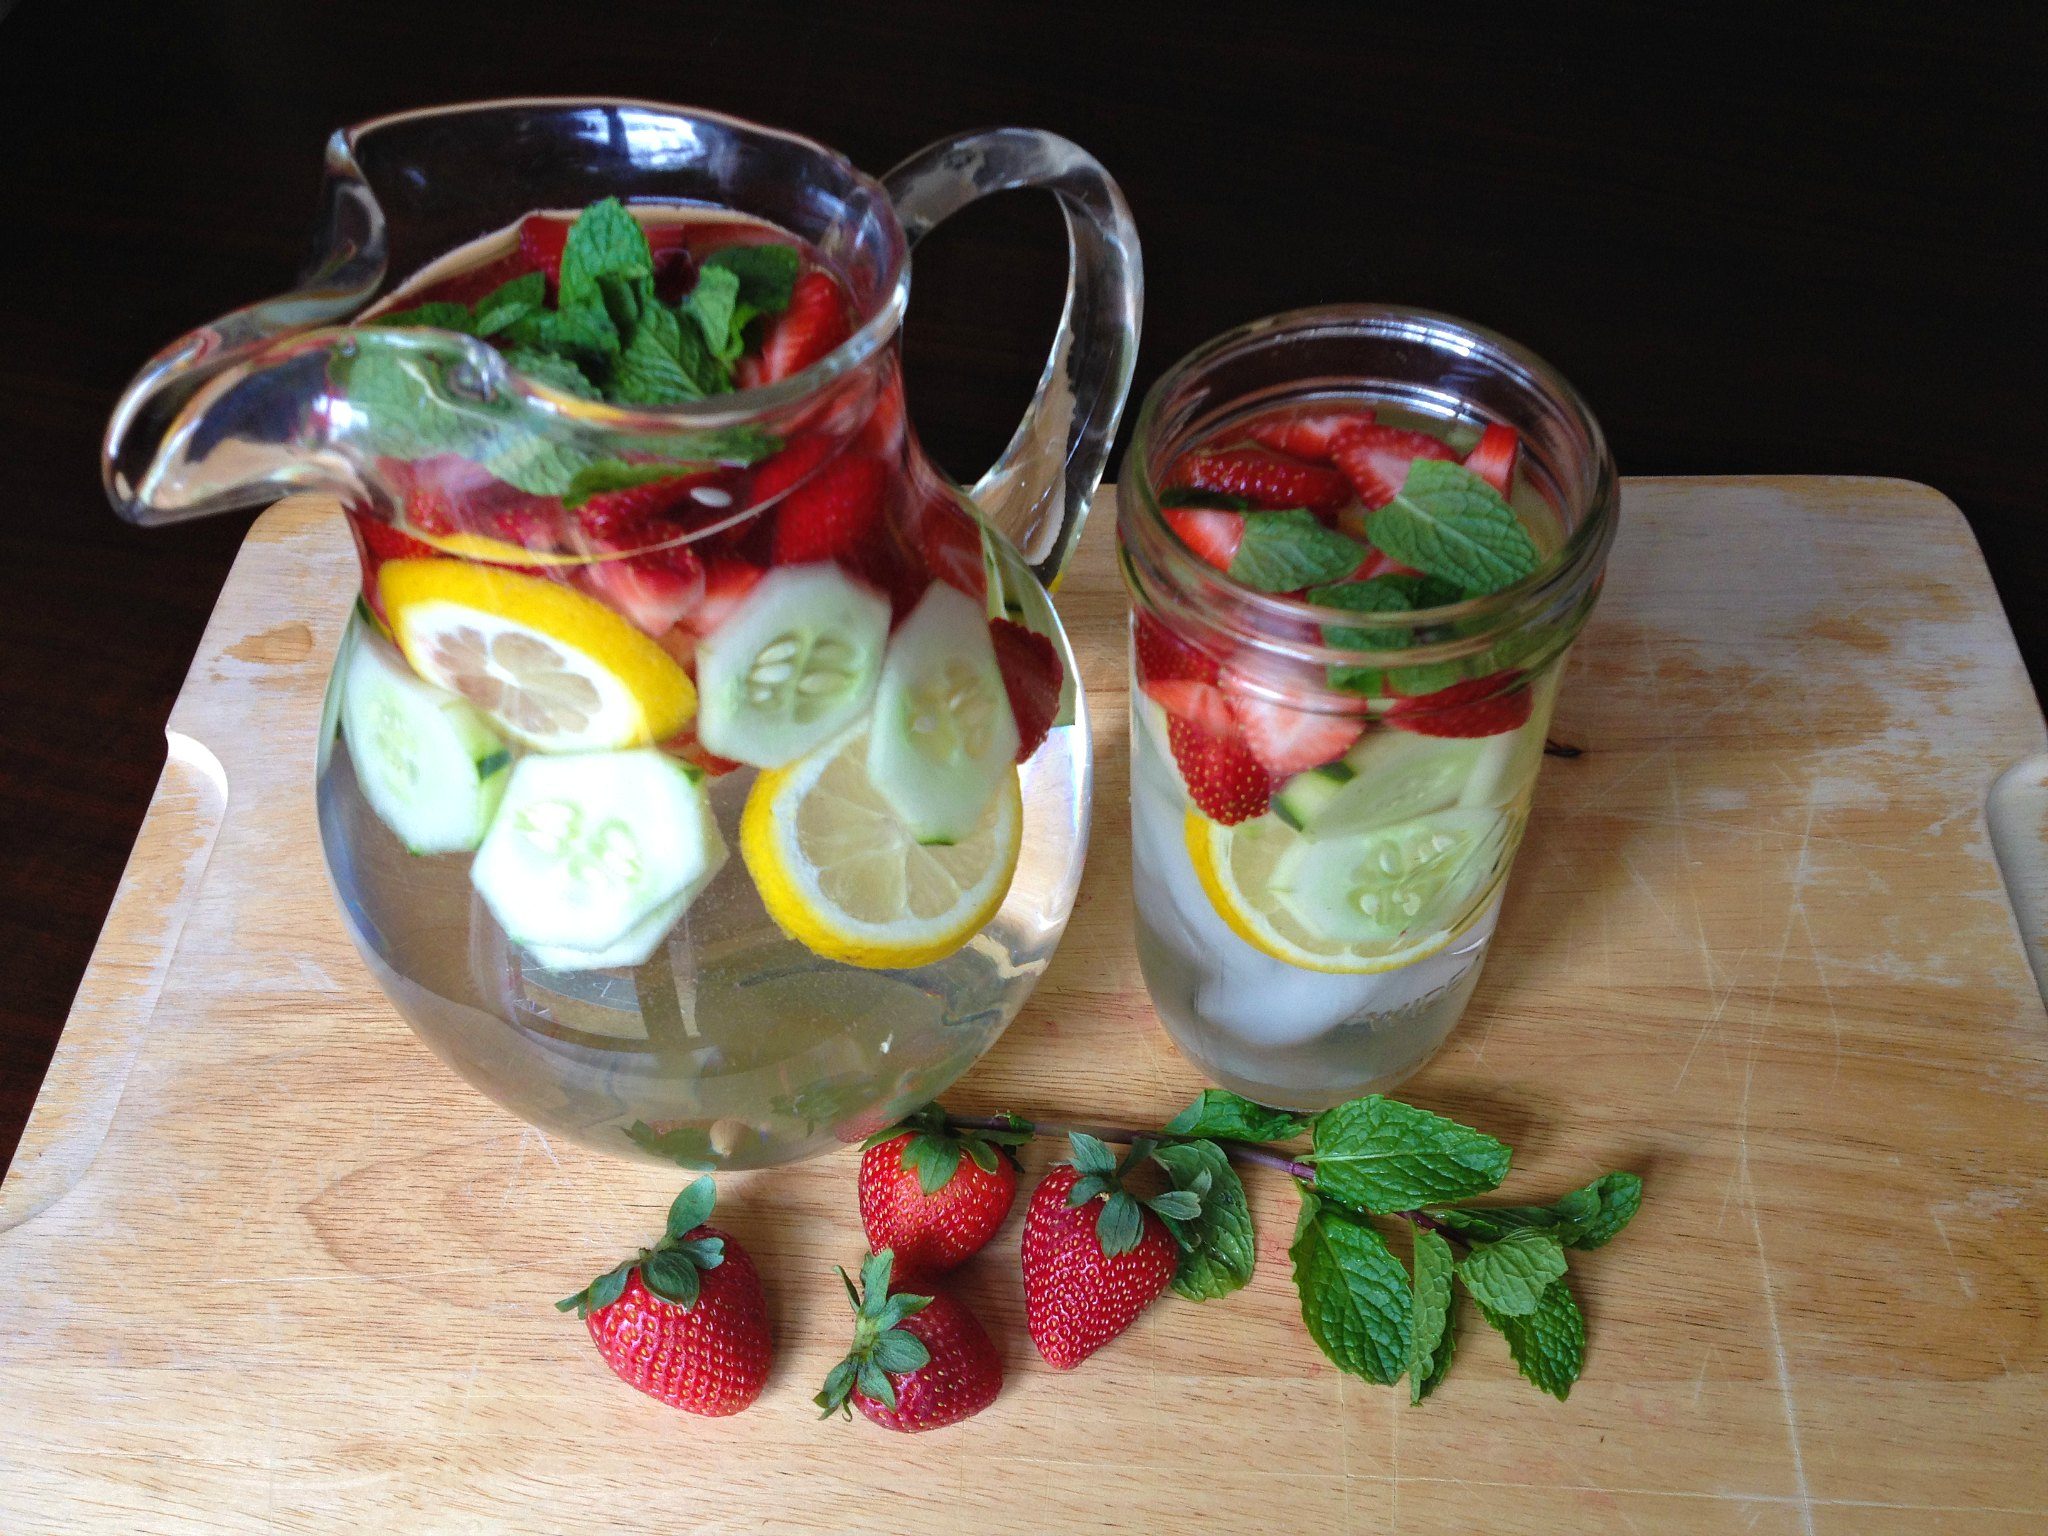 Strawberry and Cucumber Detox Drink 2